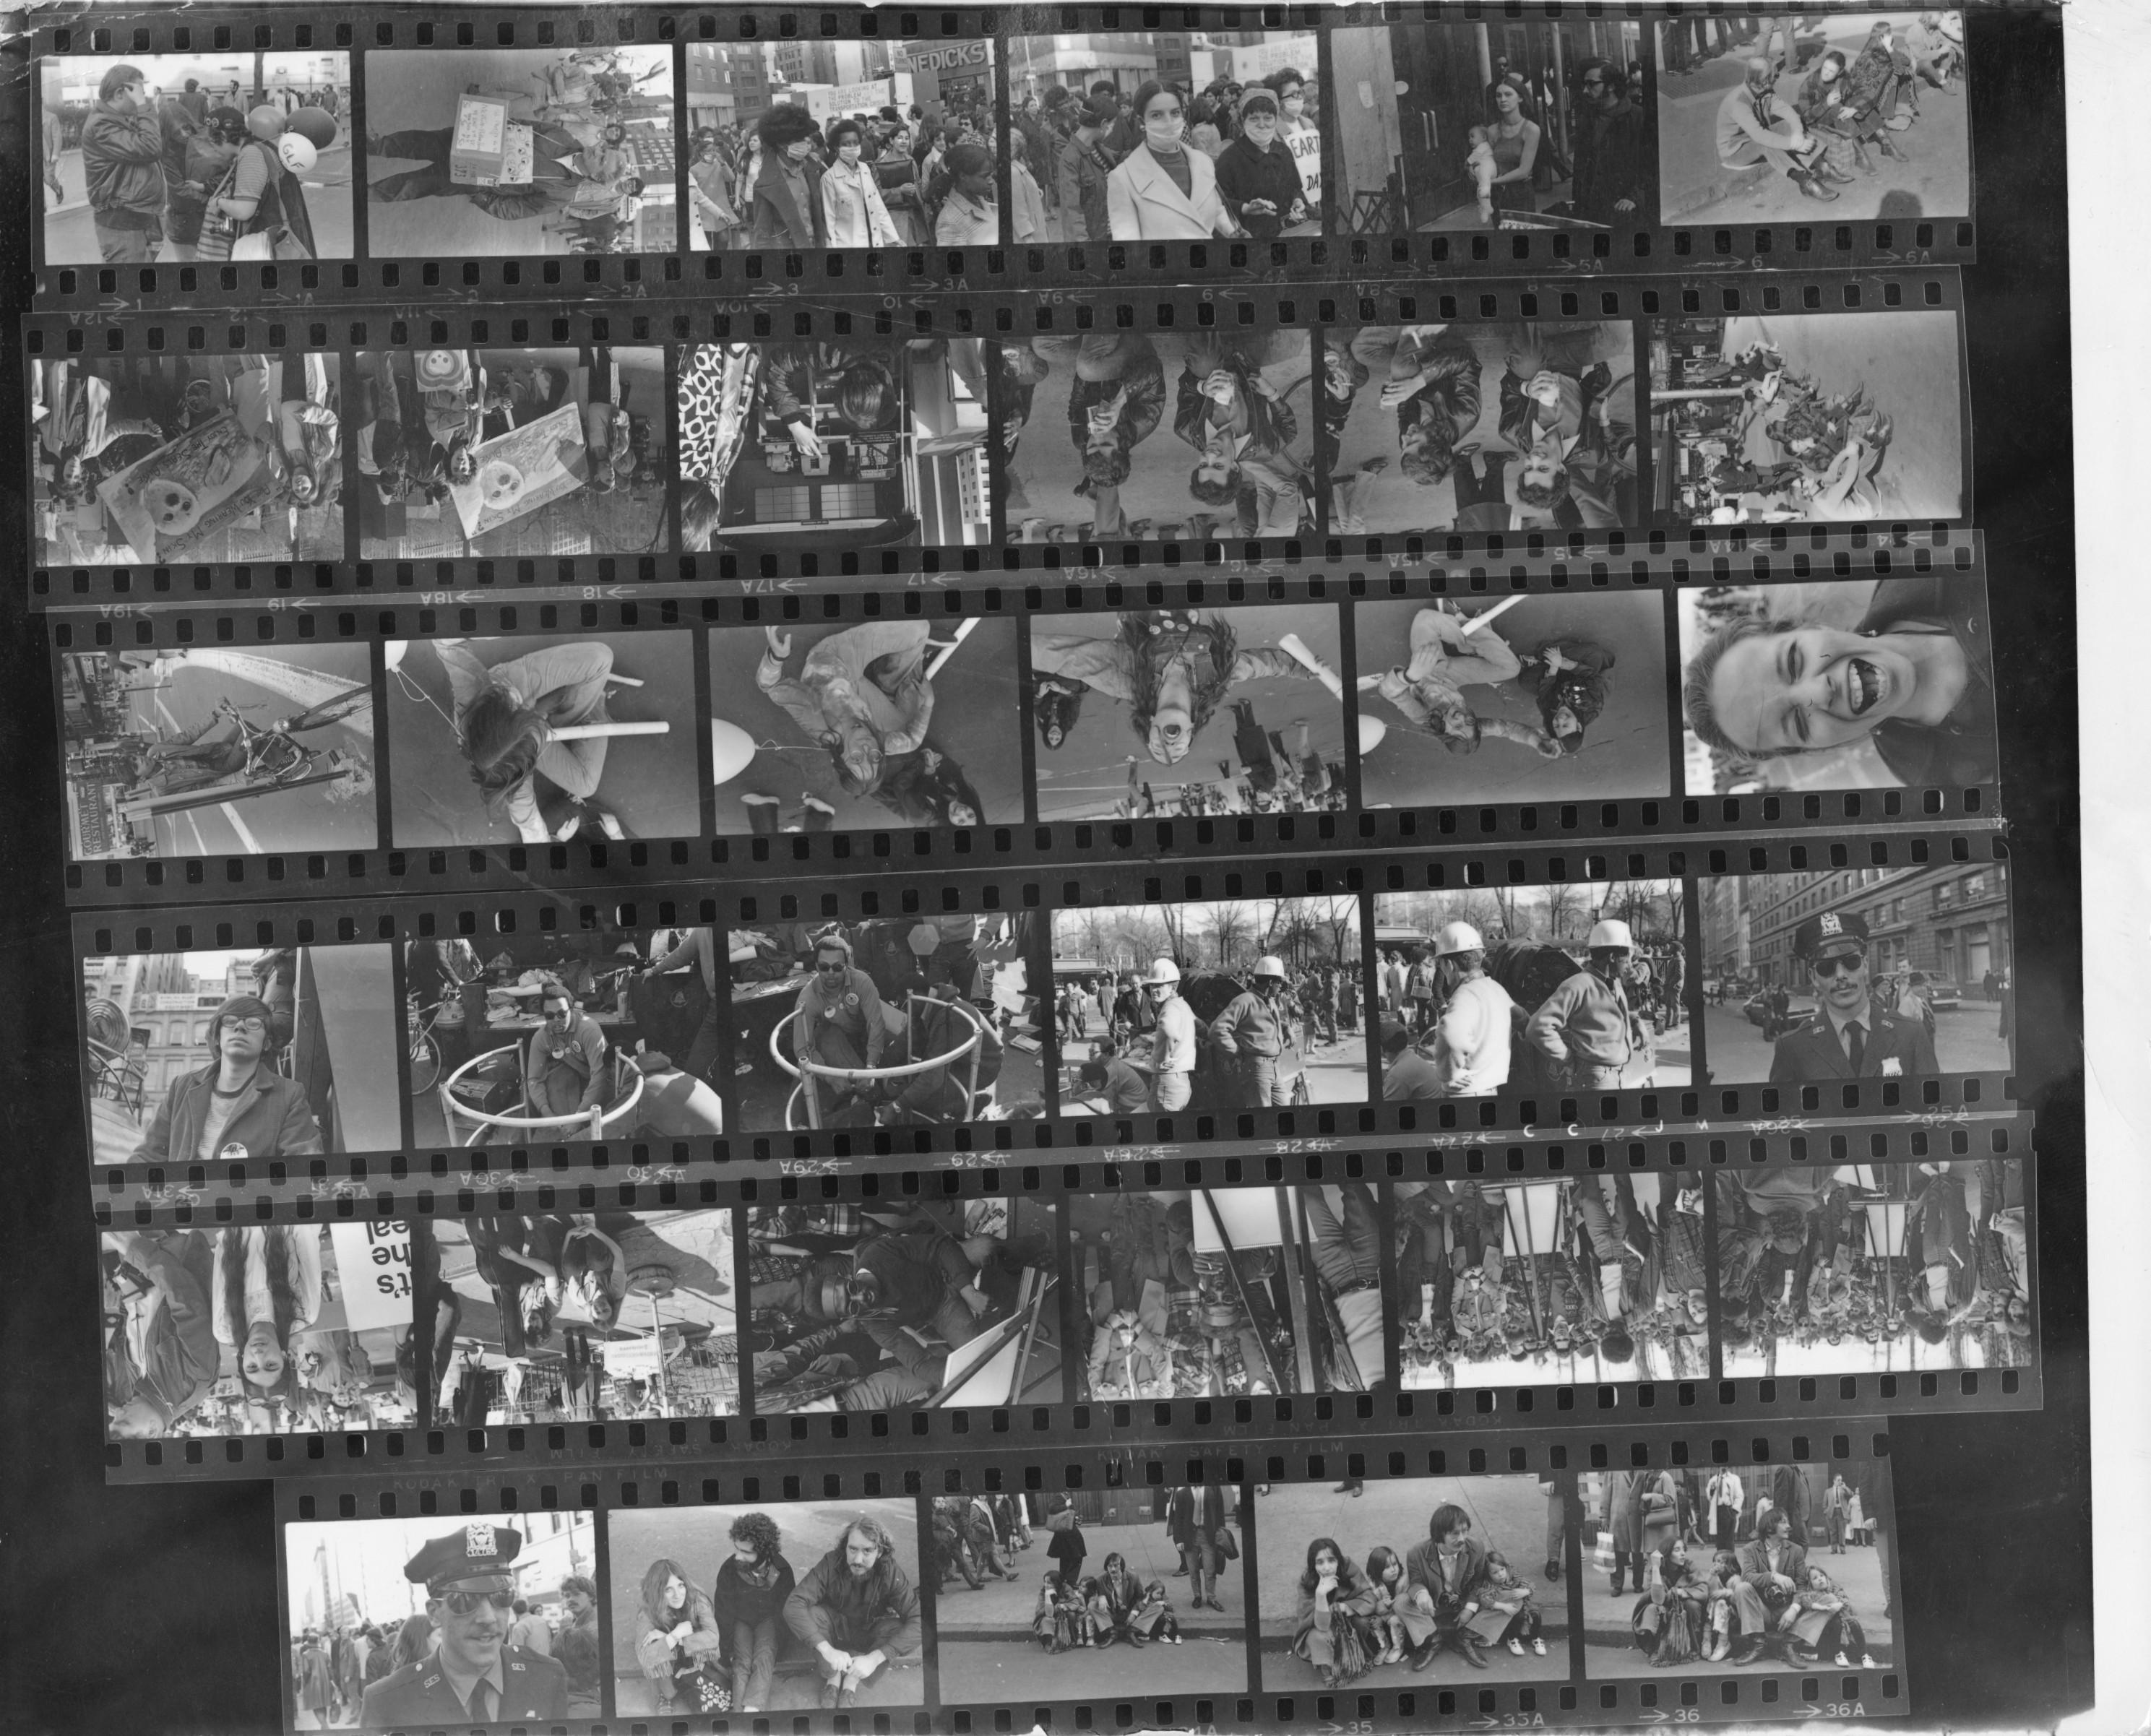 A contact sheet of photos of protestors and marchers at New York City's first Earth Day event in 1970. Photos by Dan Jaffe